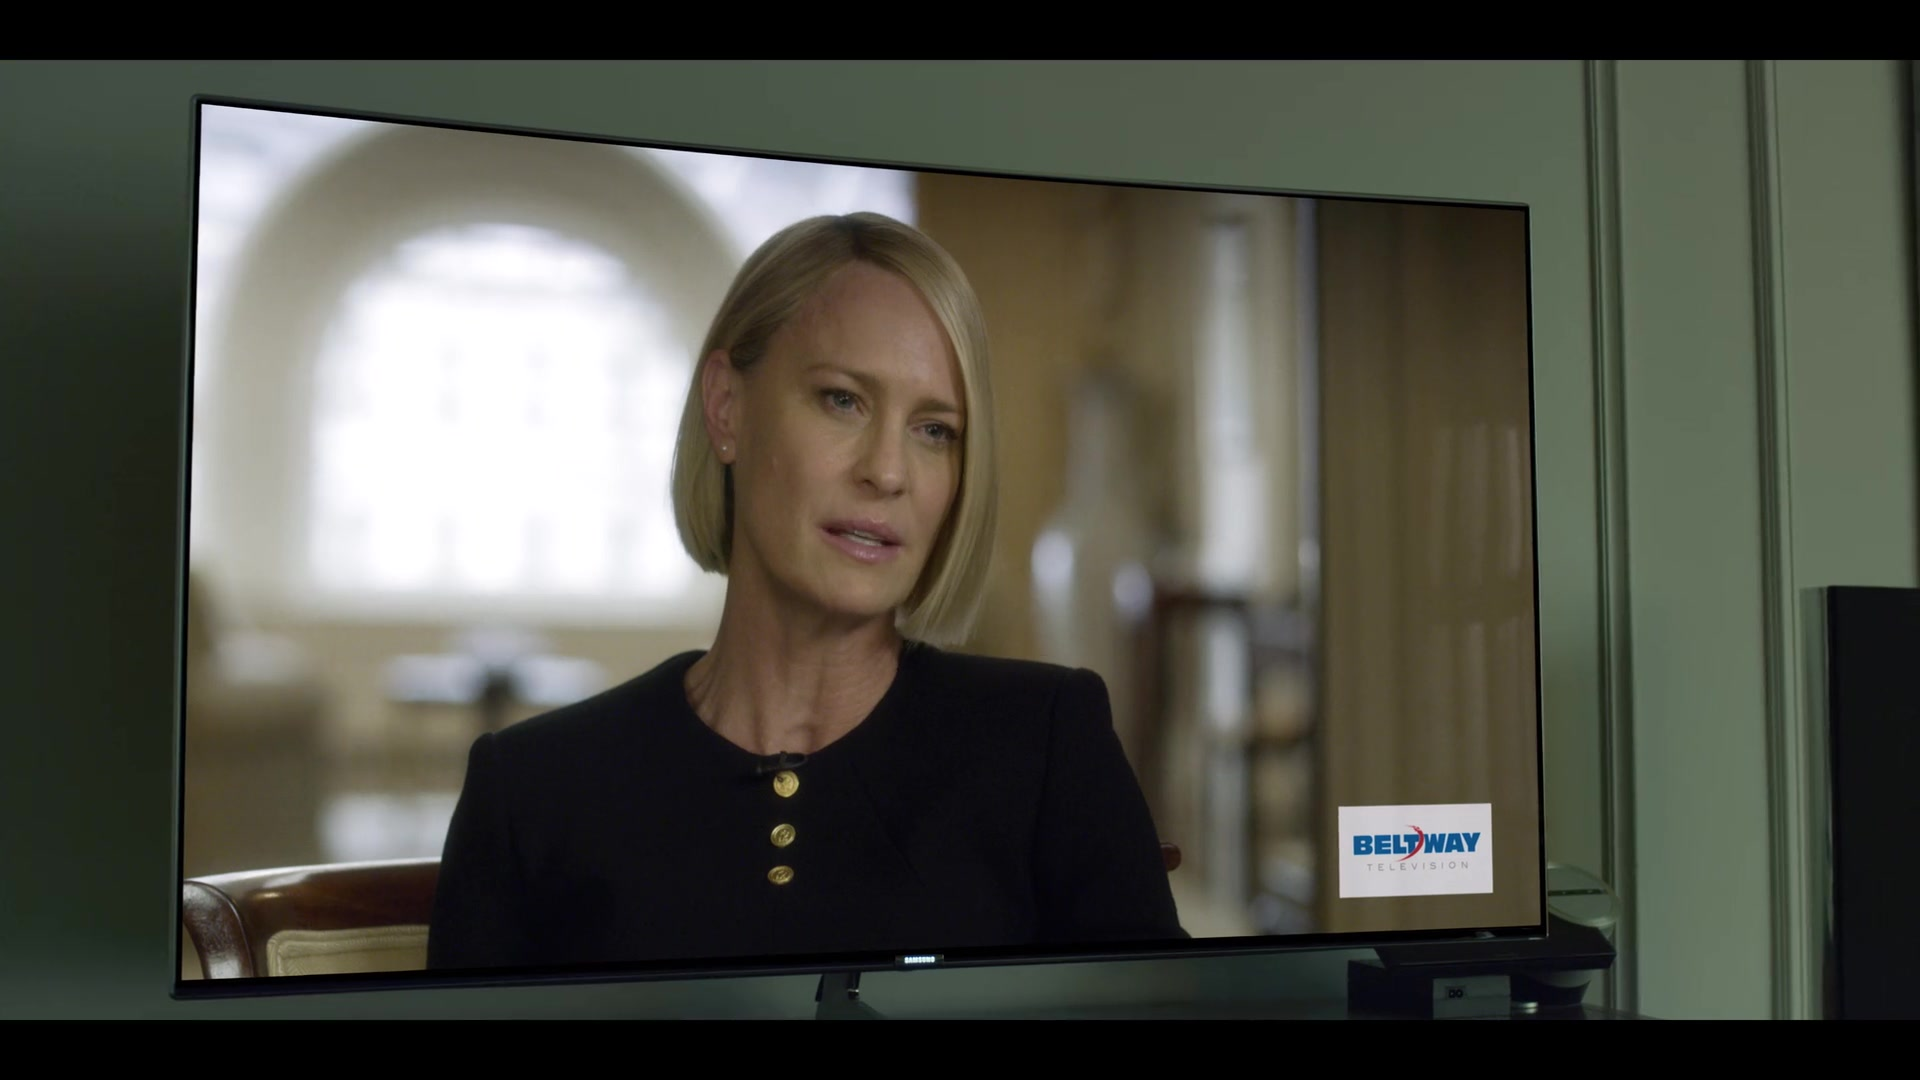 Samsung Curved 4k Uhd Tv In House Of Cards Season 6 Episode 7